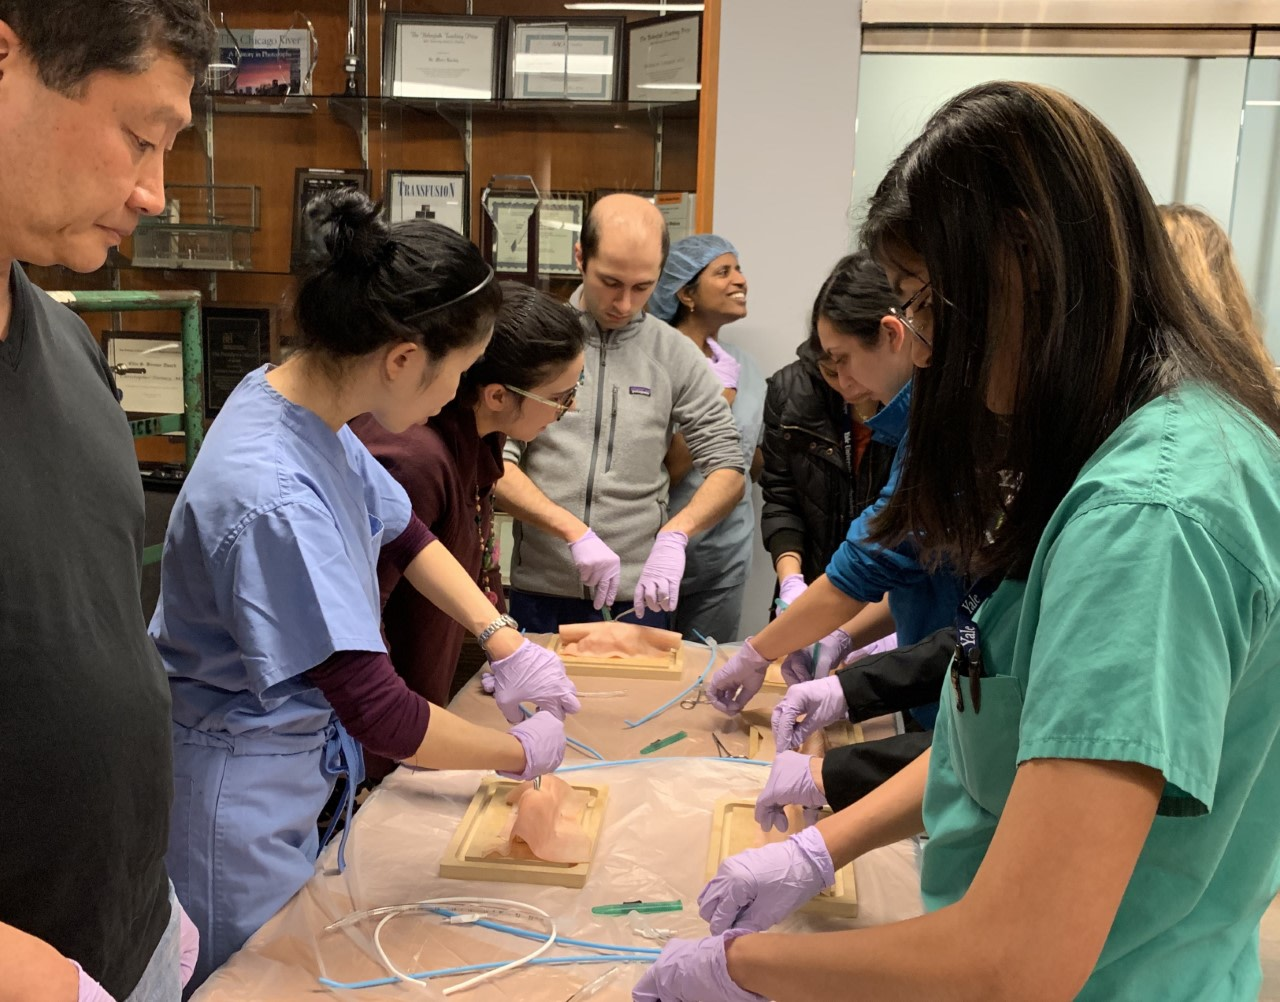 Attendance was more than 50 learners including our current residents, the PGY1s and several medical students.